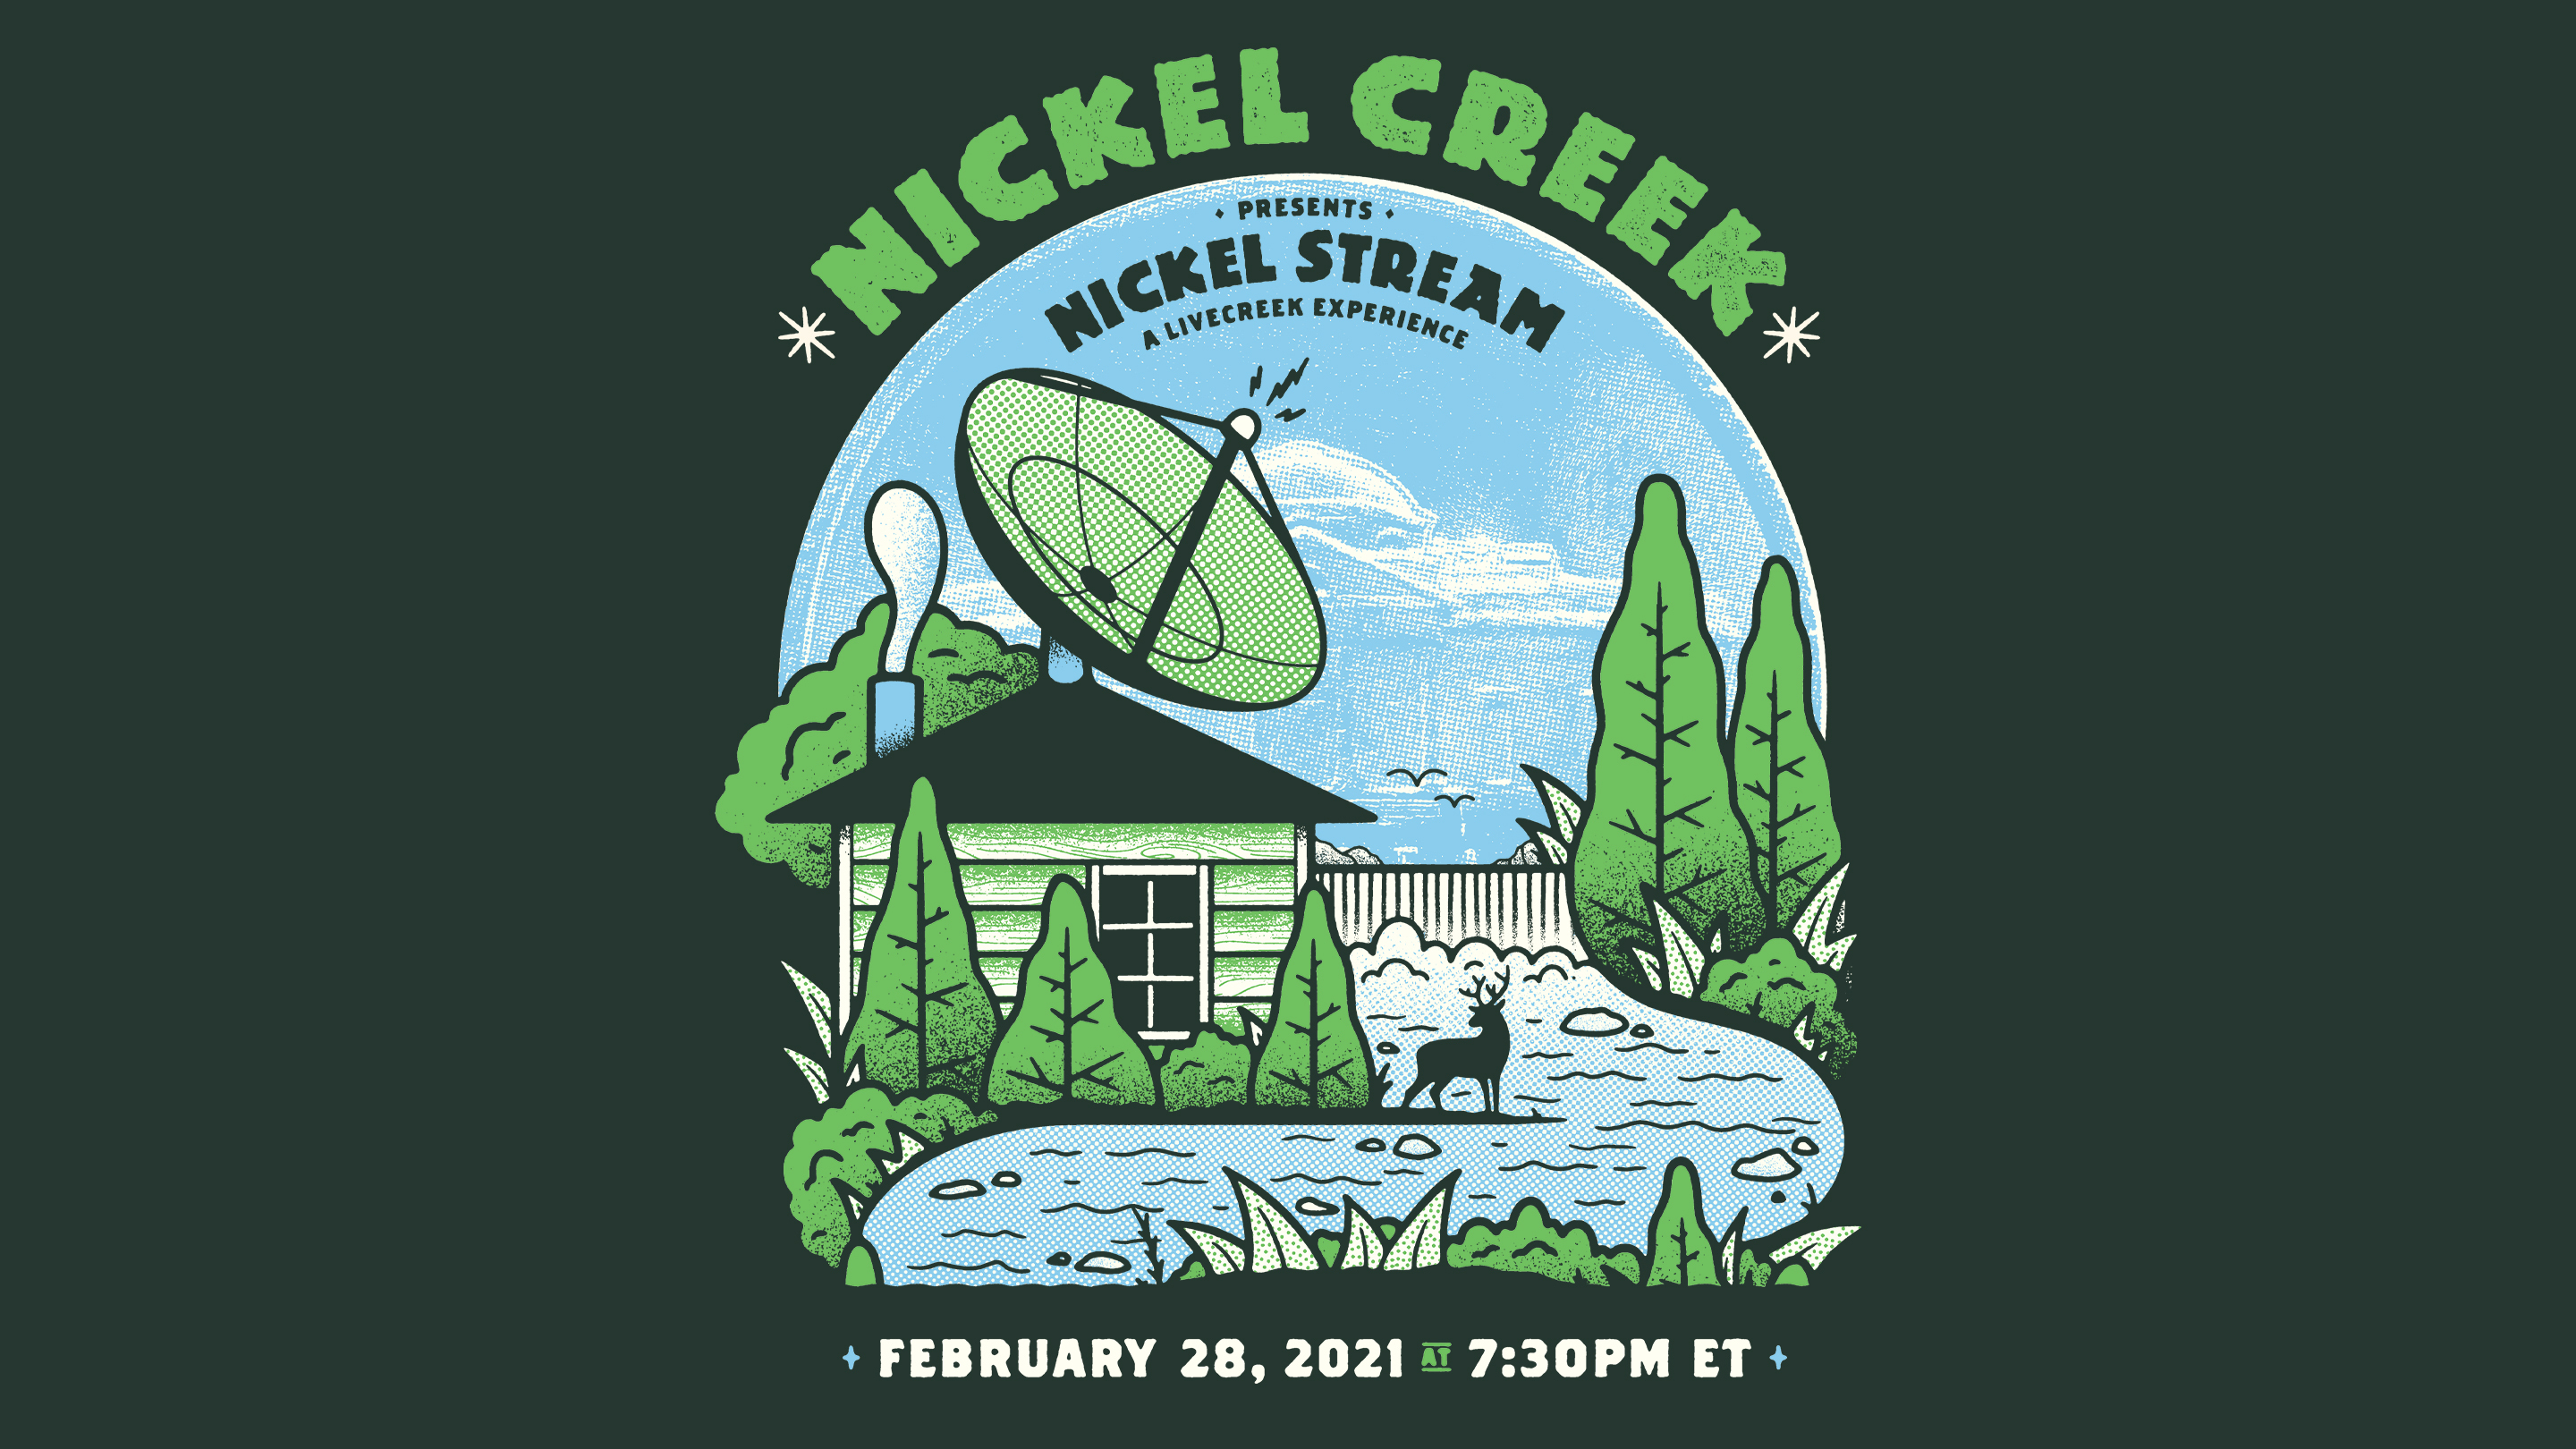 Nickel Creek - Online